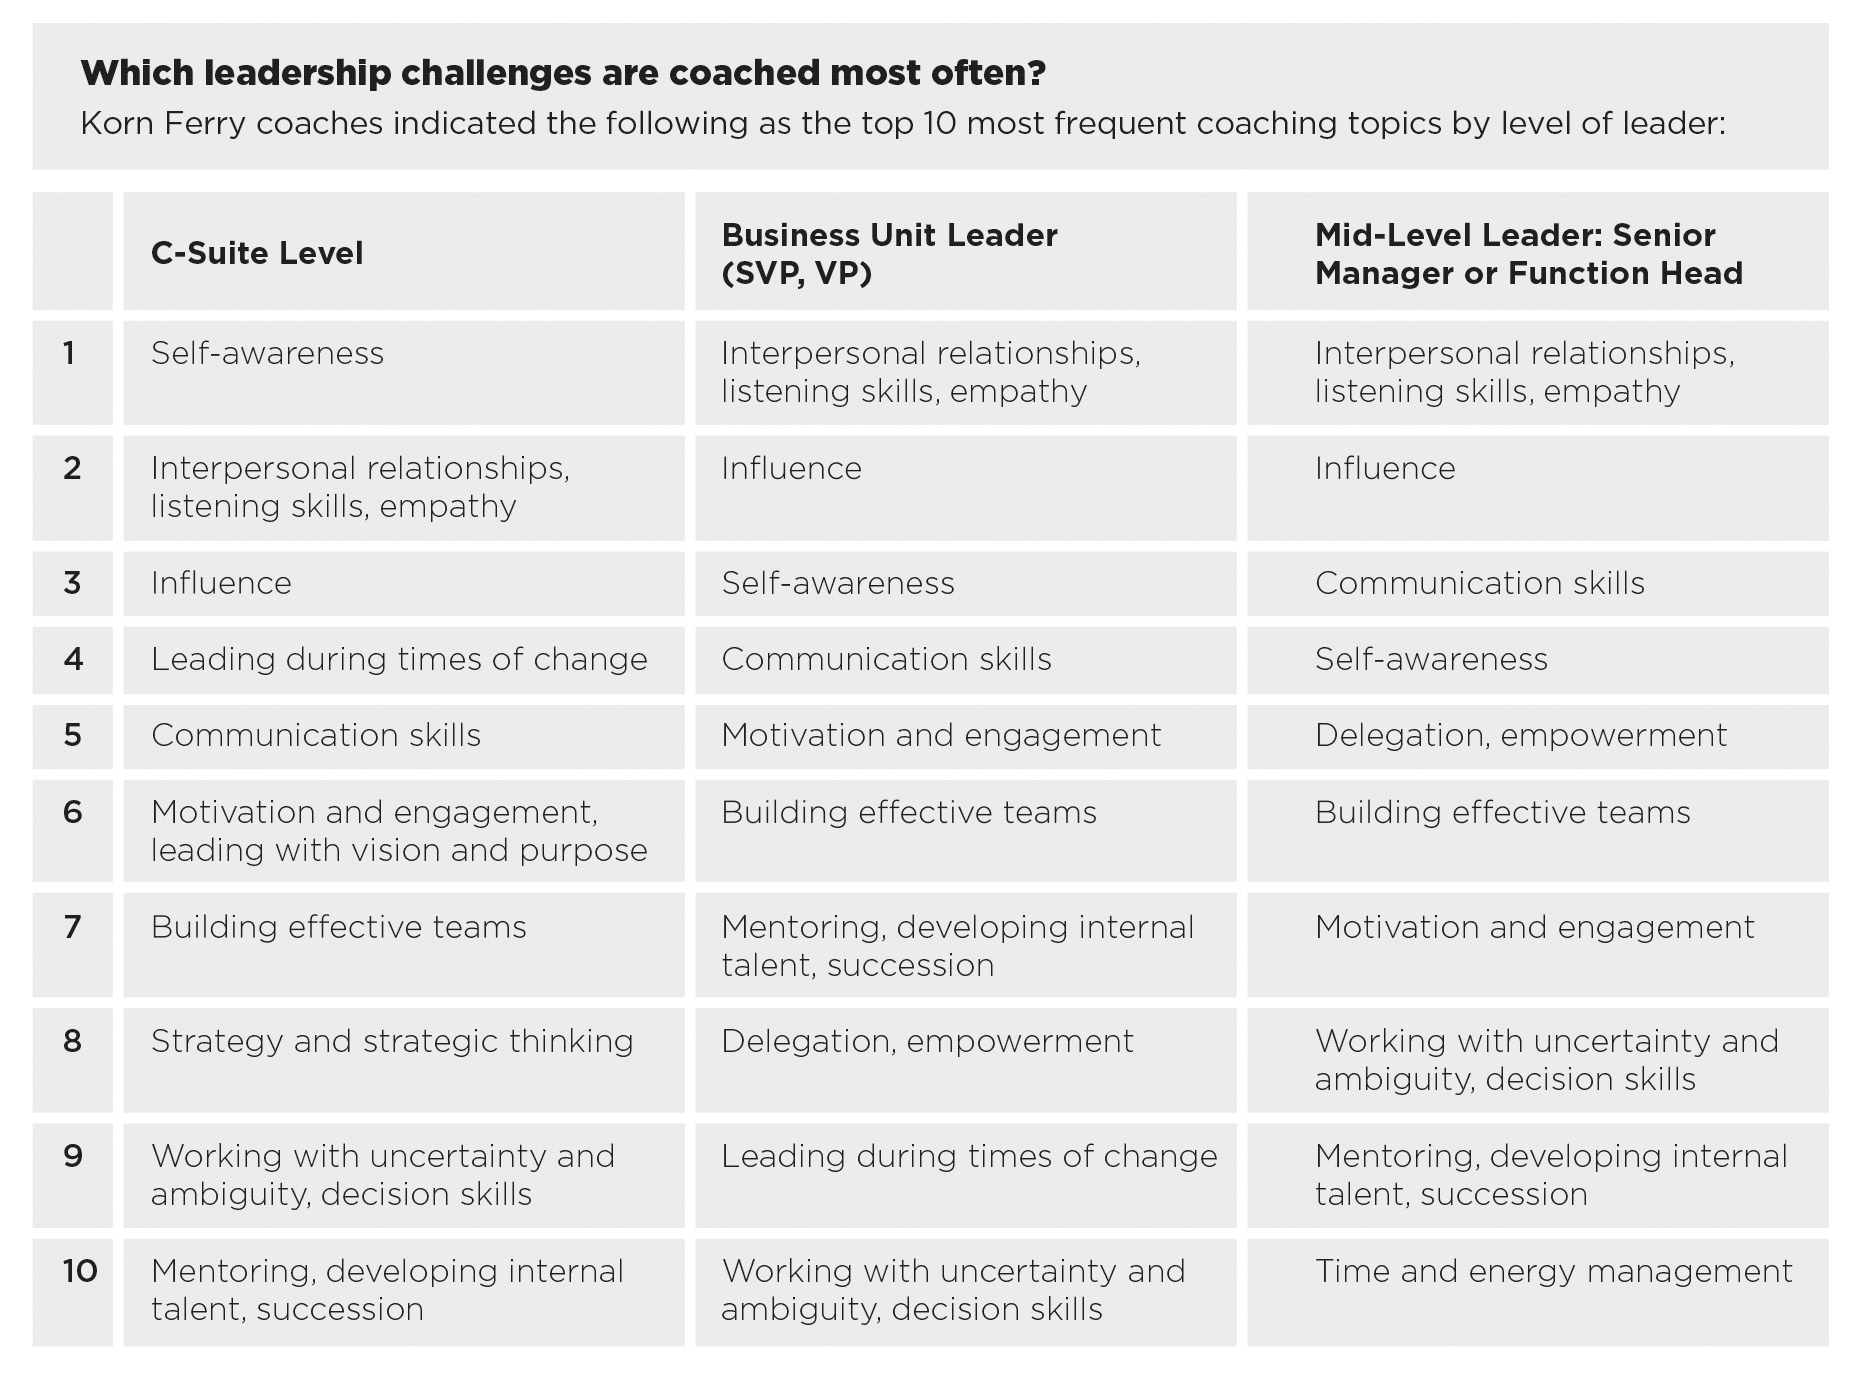 Korn Ferry Study Identifies Leadership Challenges Being Coached ...